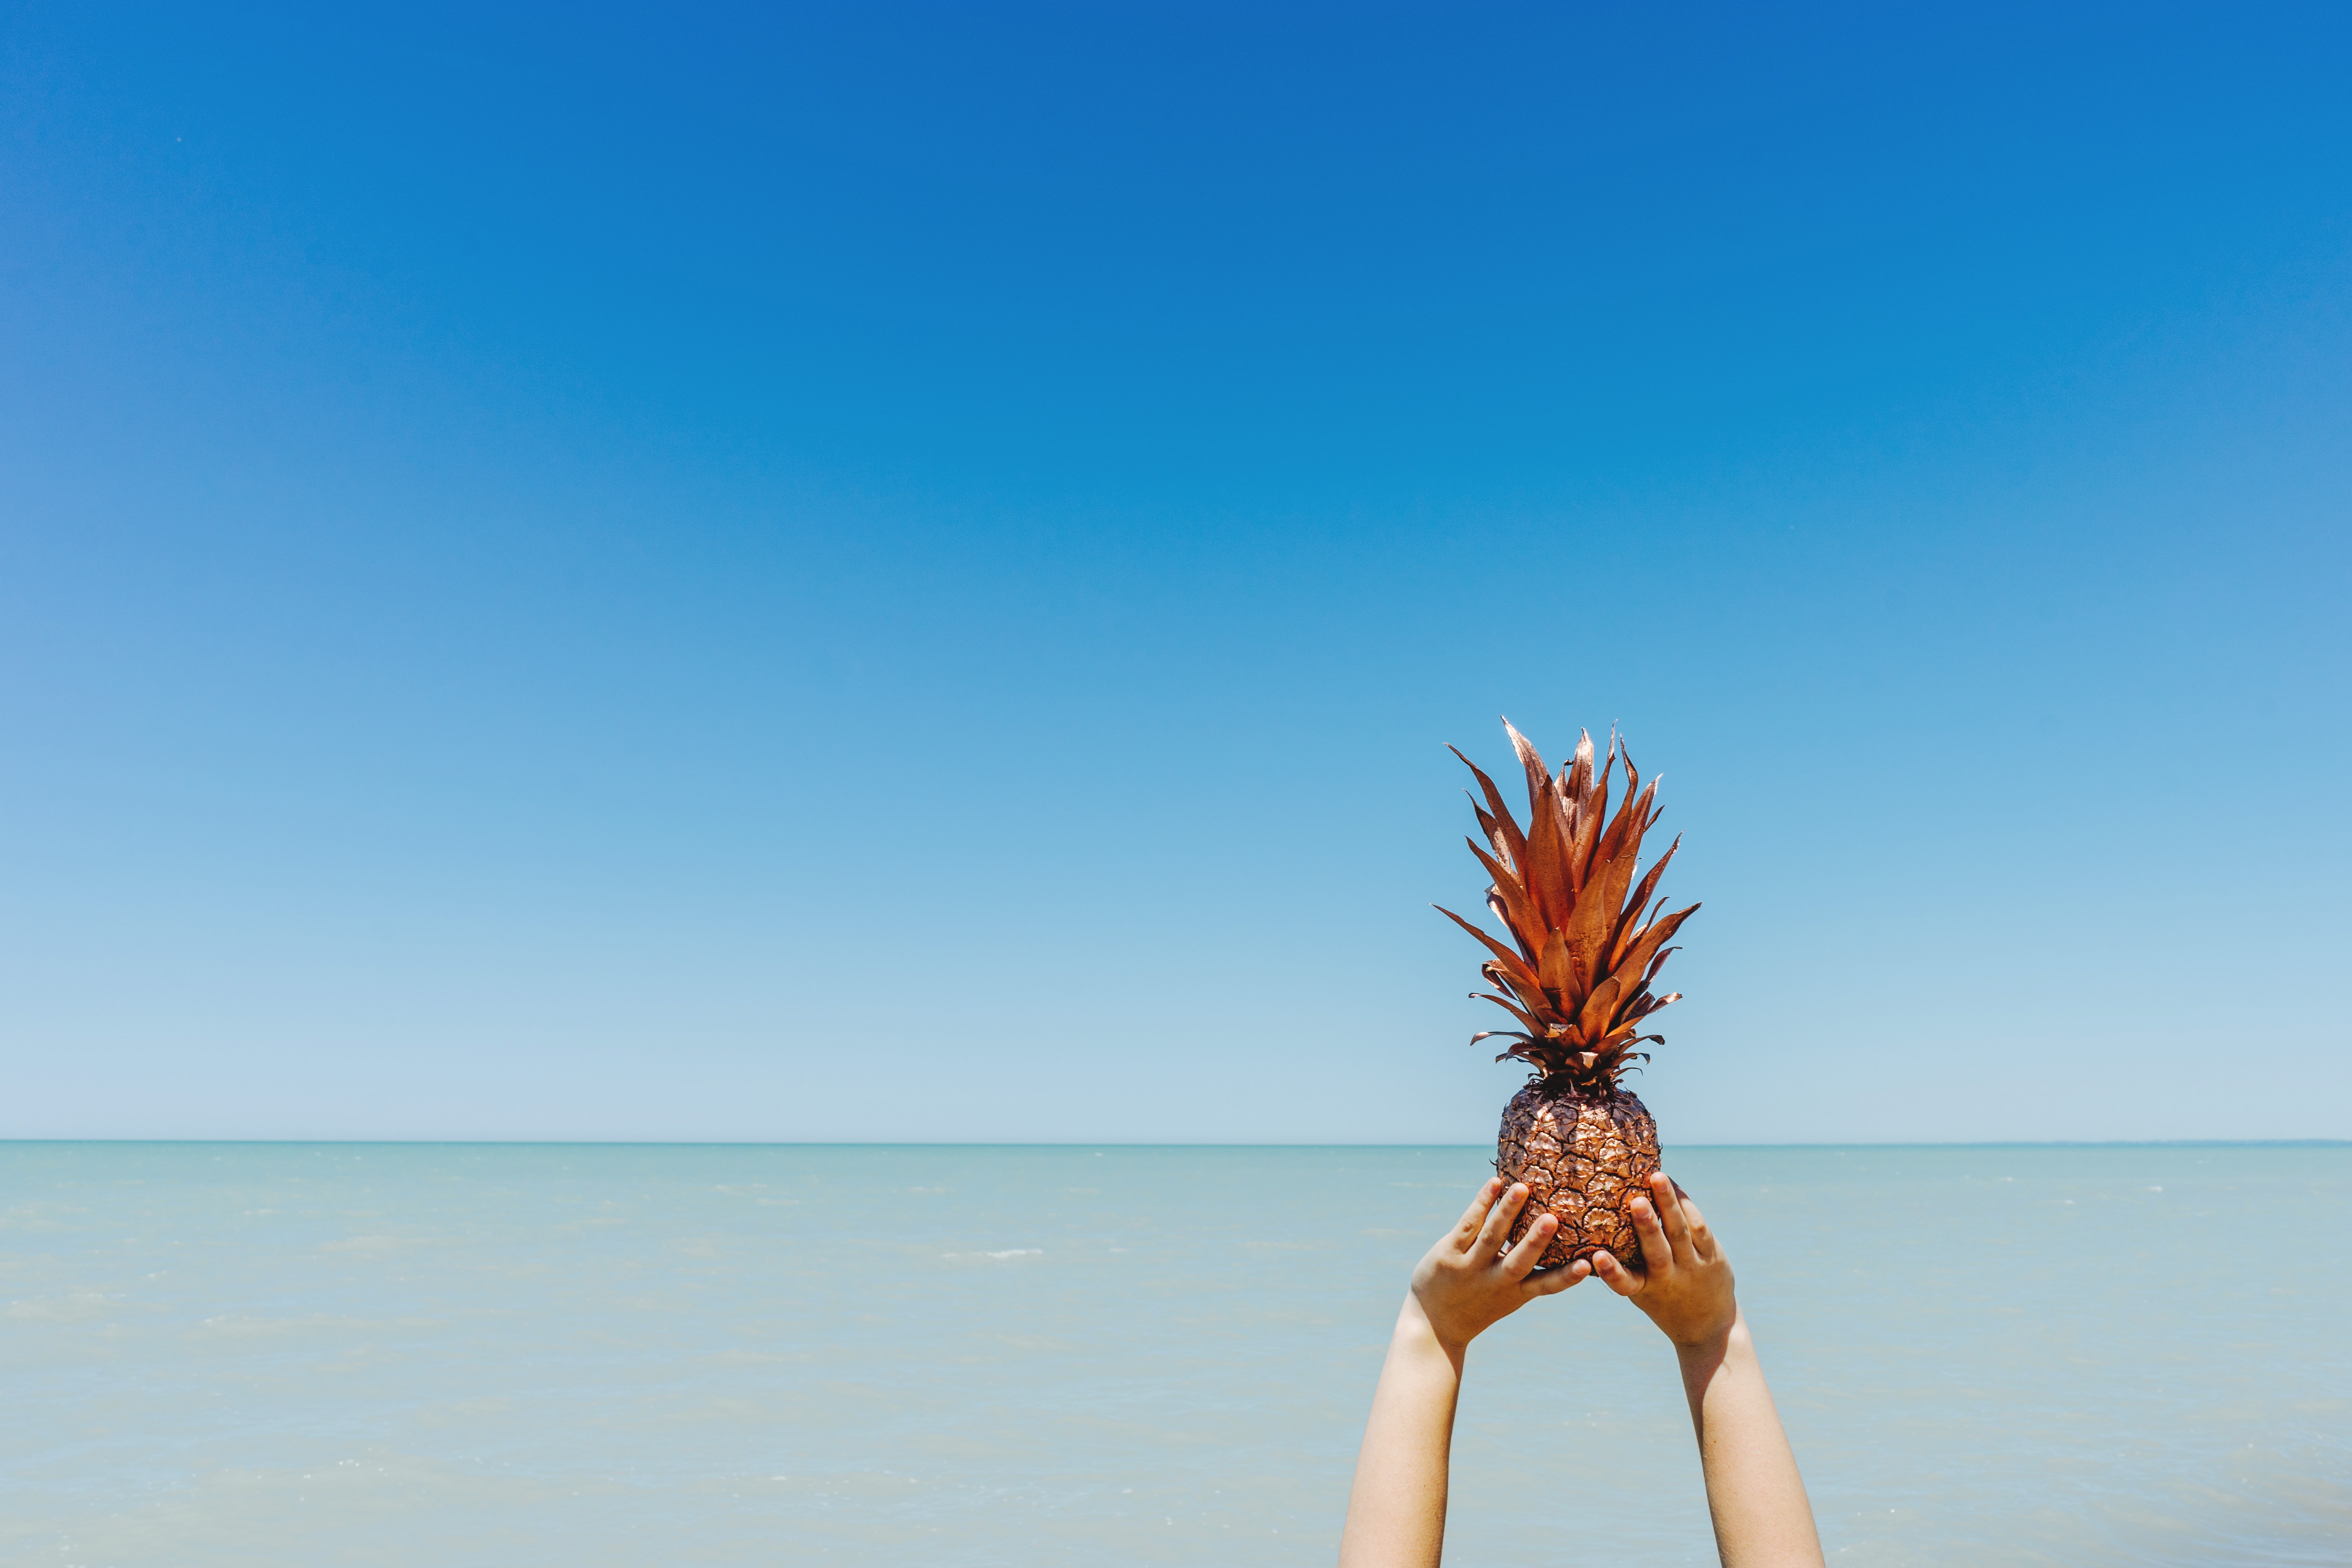 A person holding up a gold-painted pineapple against the vast sea stretching to the horizon